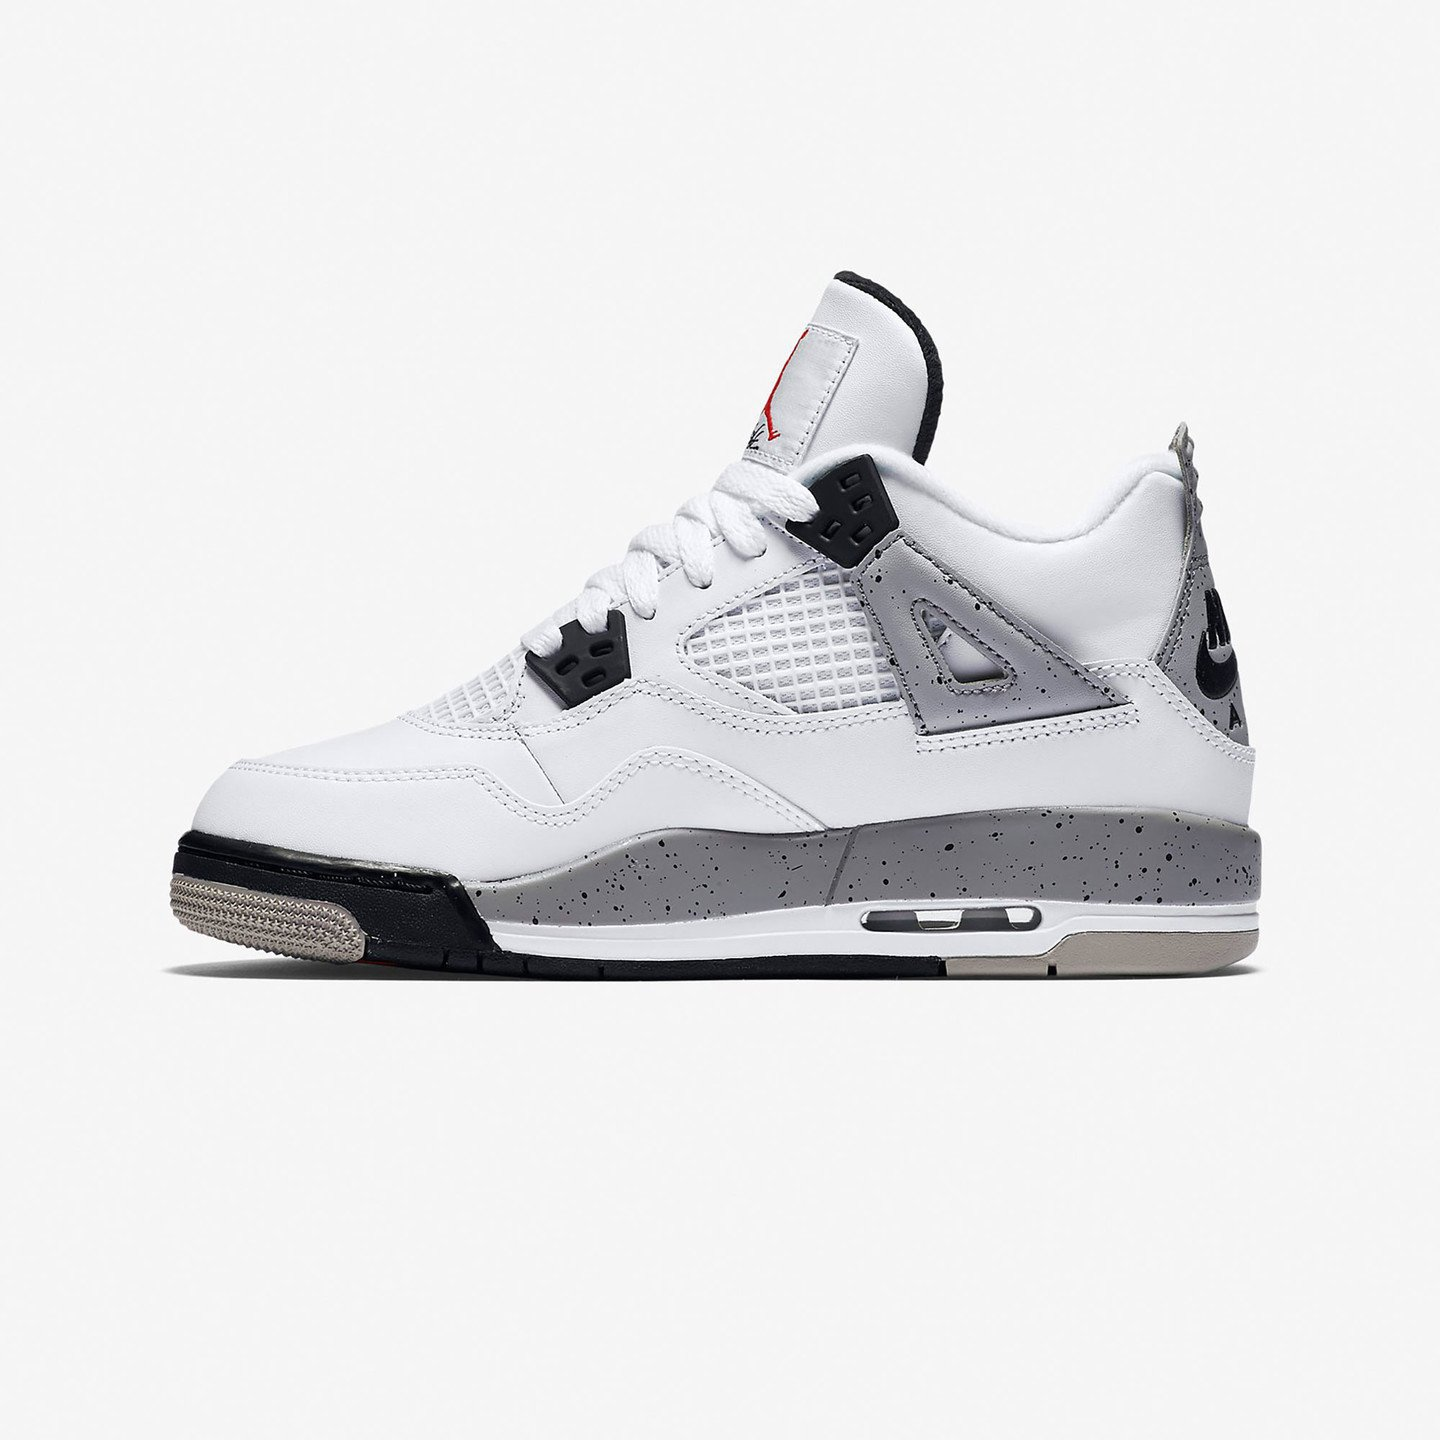 Nike Air Jordan 4 Retro GS Cement White / Fire Red / Tech Grey / Black 836016-192-36.5